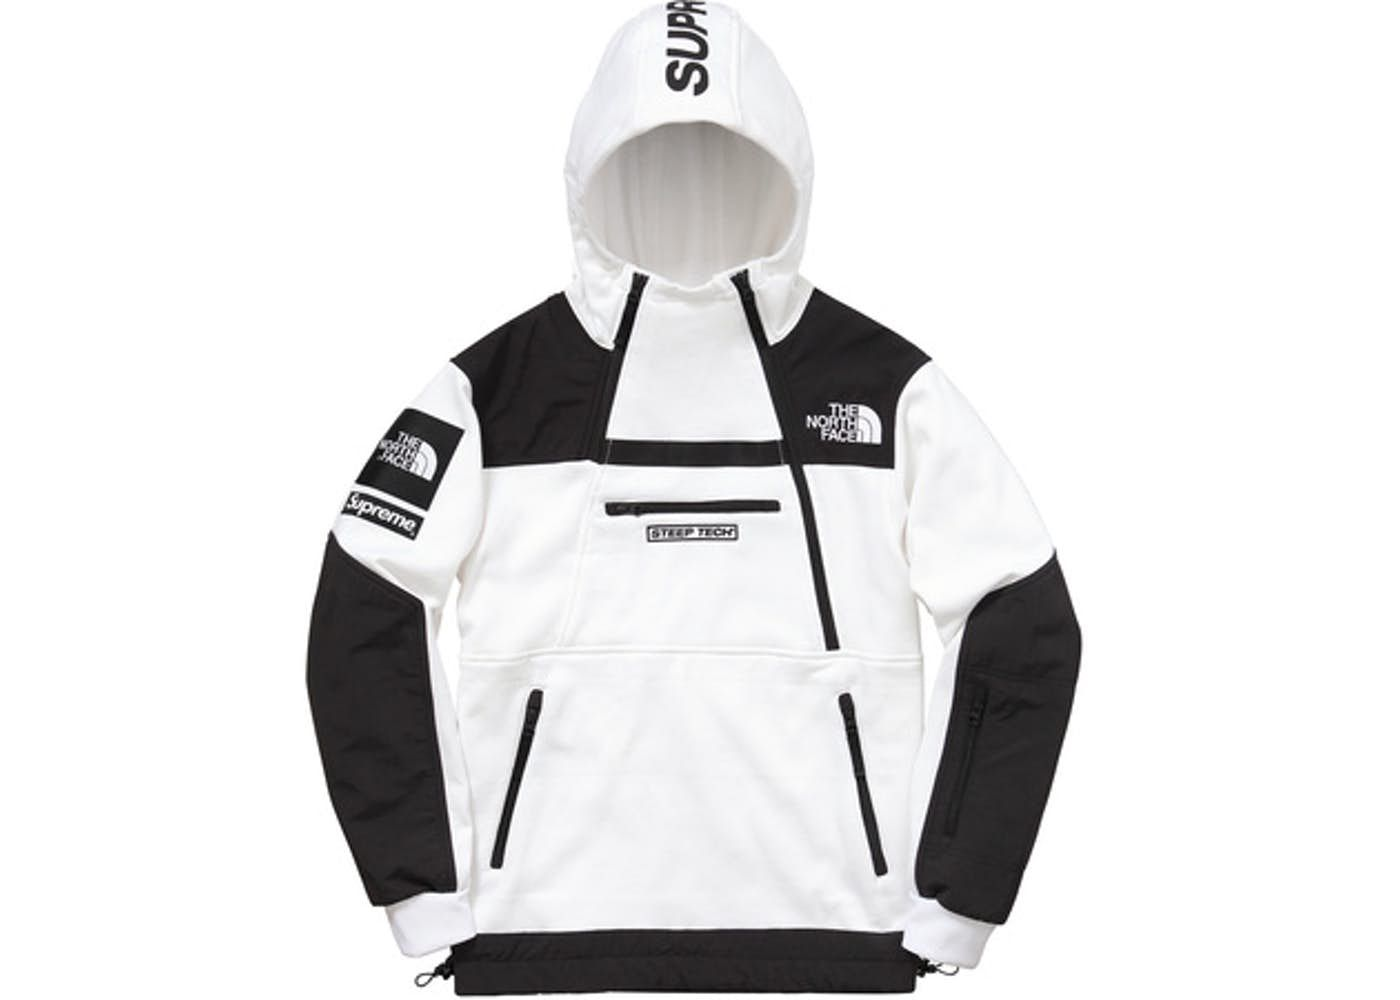 798b3822 Check out the Supreme The North Face Steep Tech Hooded Sweatshirt White  available on StockX